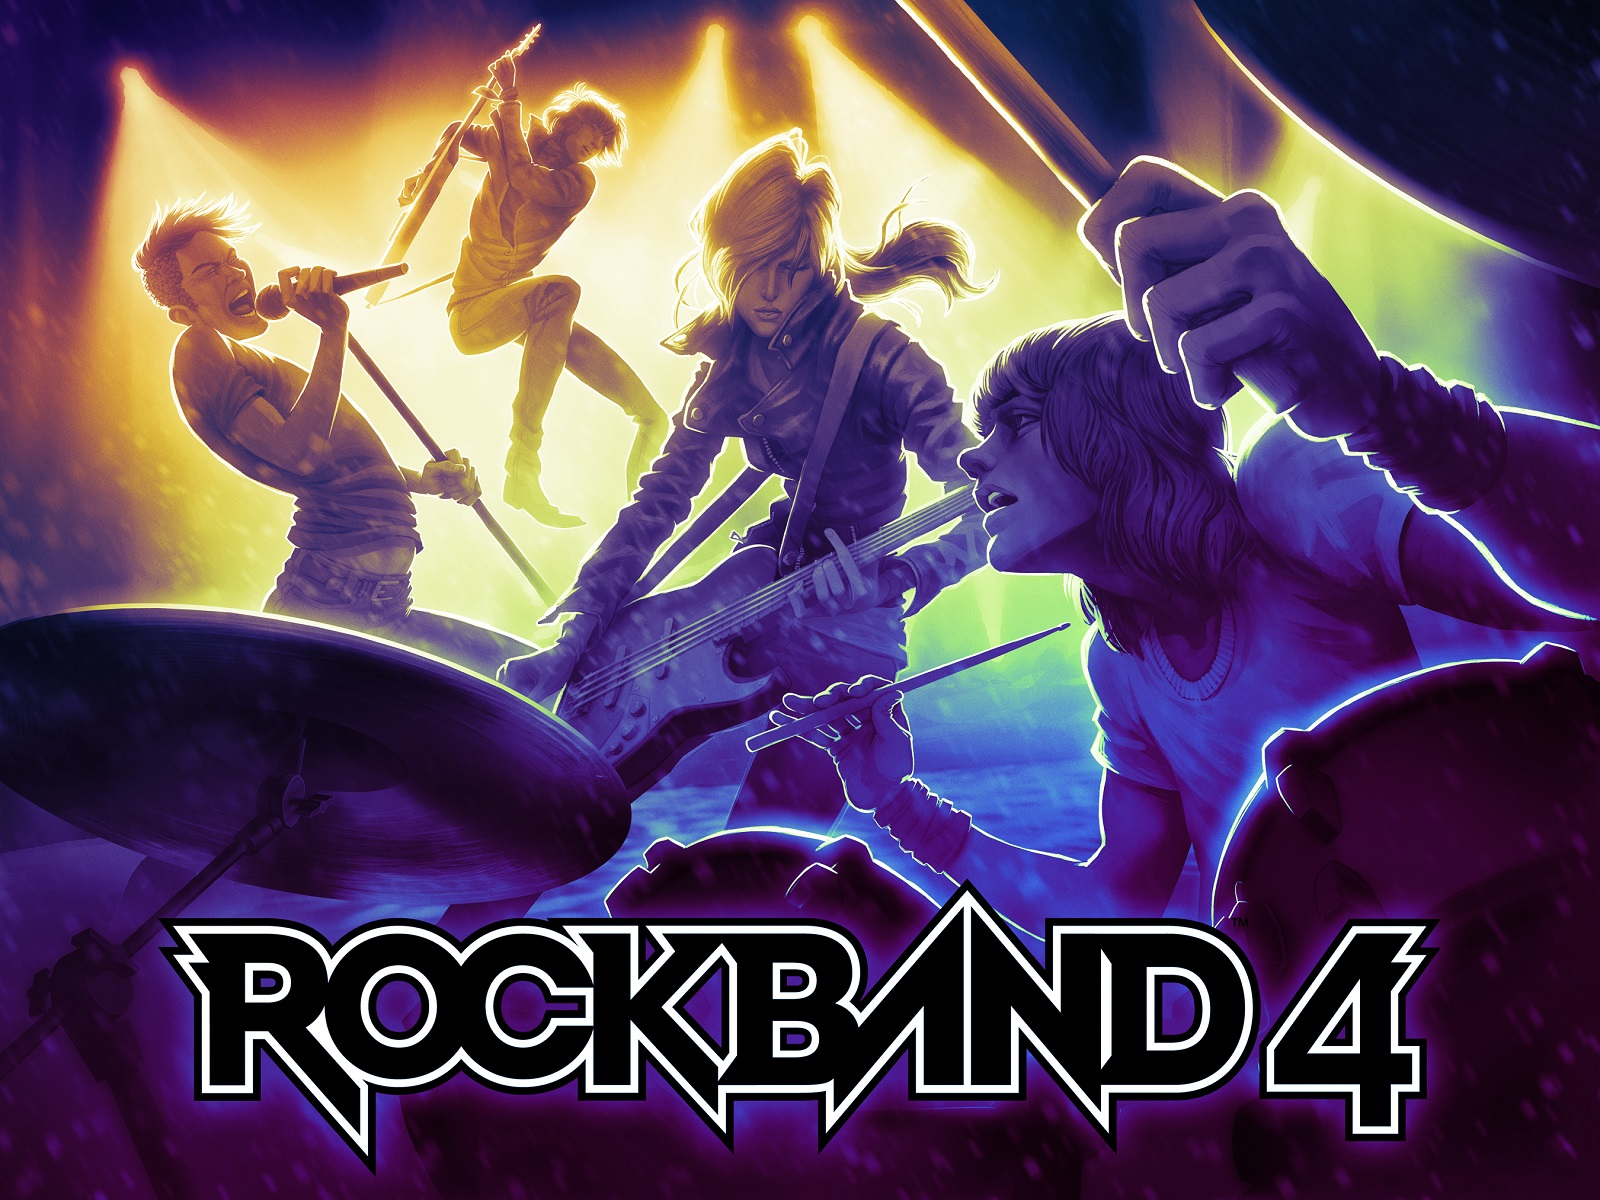 """Rock Band 4"" Announced - Time to Rock Out with Friends Again"